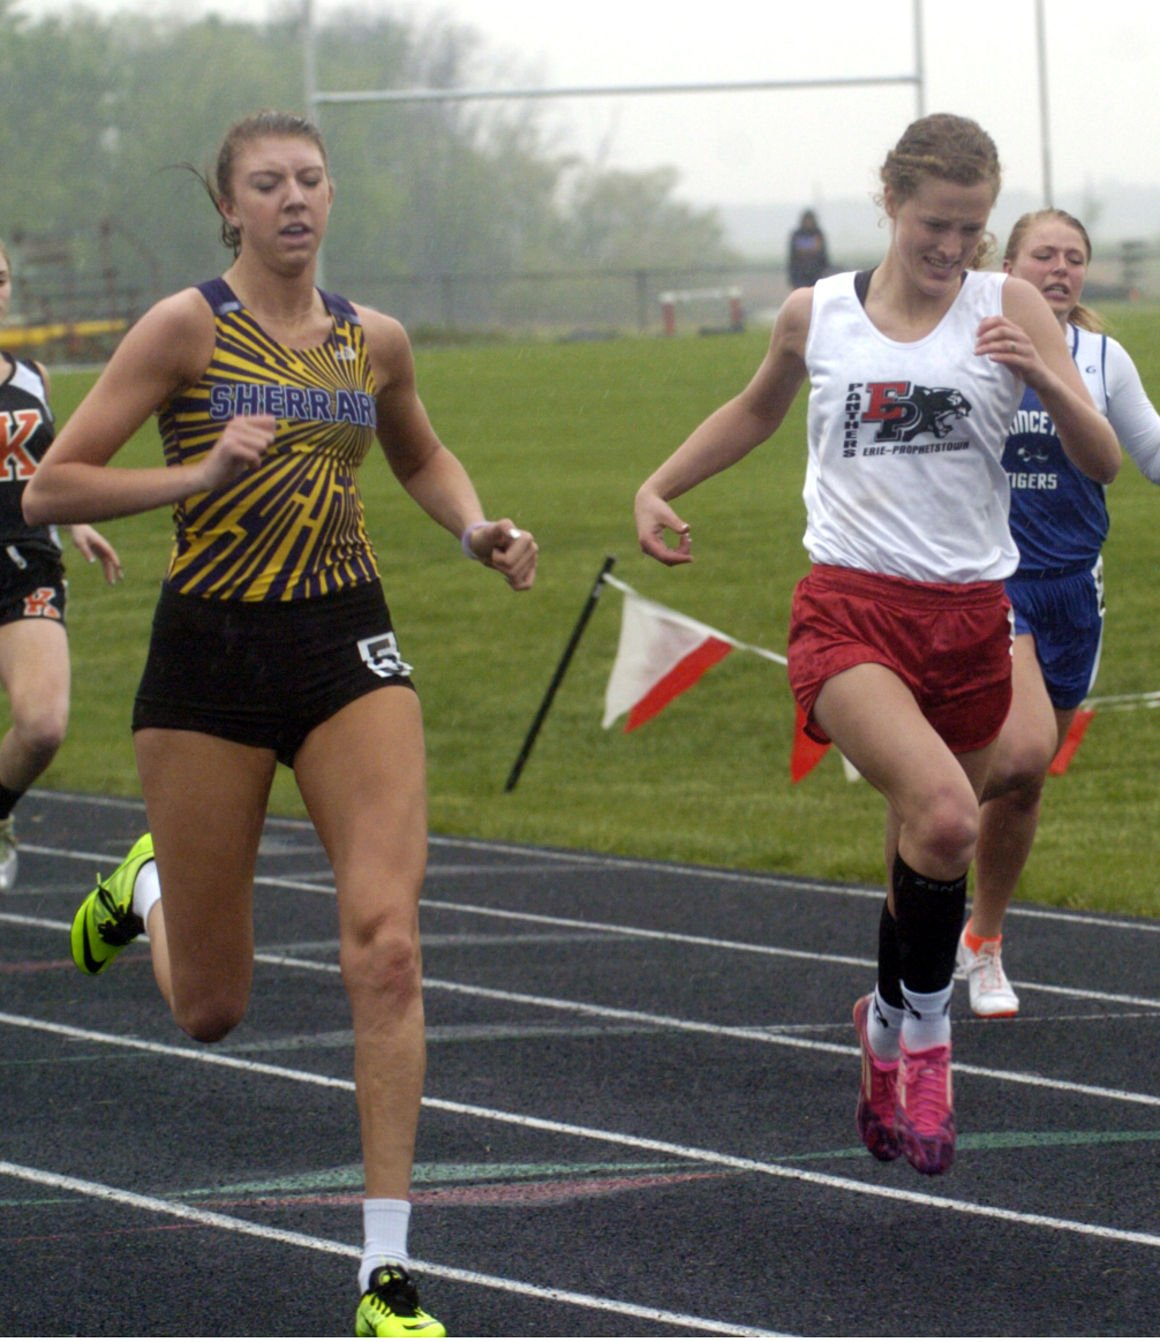 sherrard single girls Sherrard — the galesburg high school girls track and field team finished second out of four teams at the sherrard meet on tuesdaythe silver streaks finished with 128 geneseo won the invite.